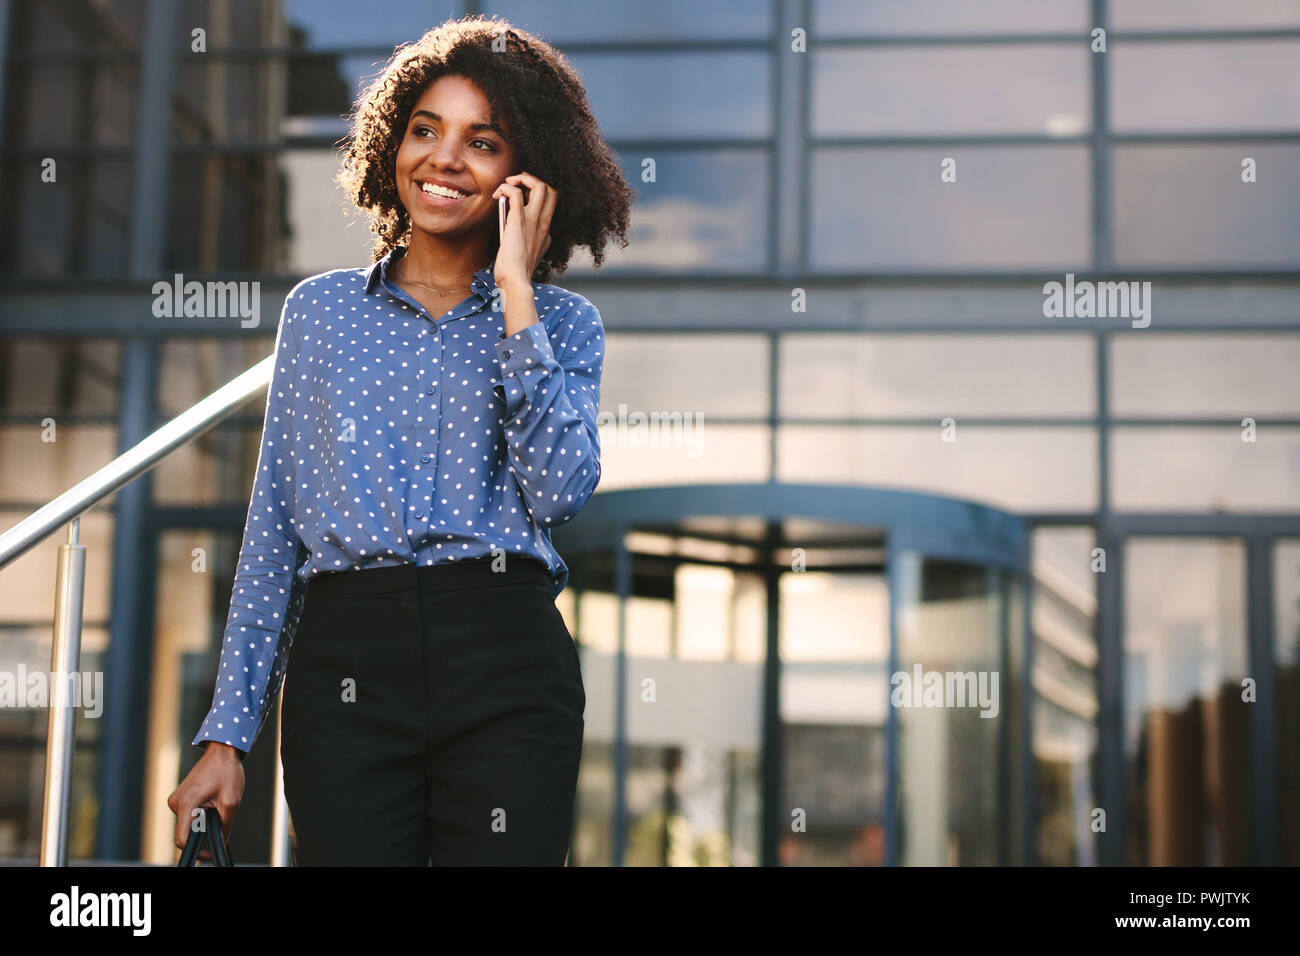 Smiling businesswoman talking over mobile phone while walking outside office building. Woman in formalwear walking outdoors and talking on phone. - Stock Image